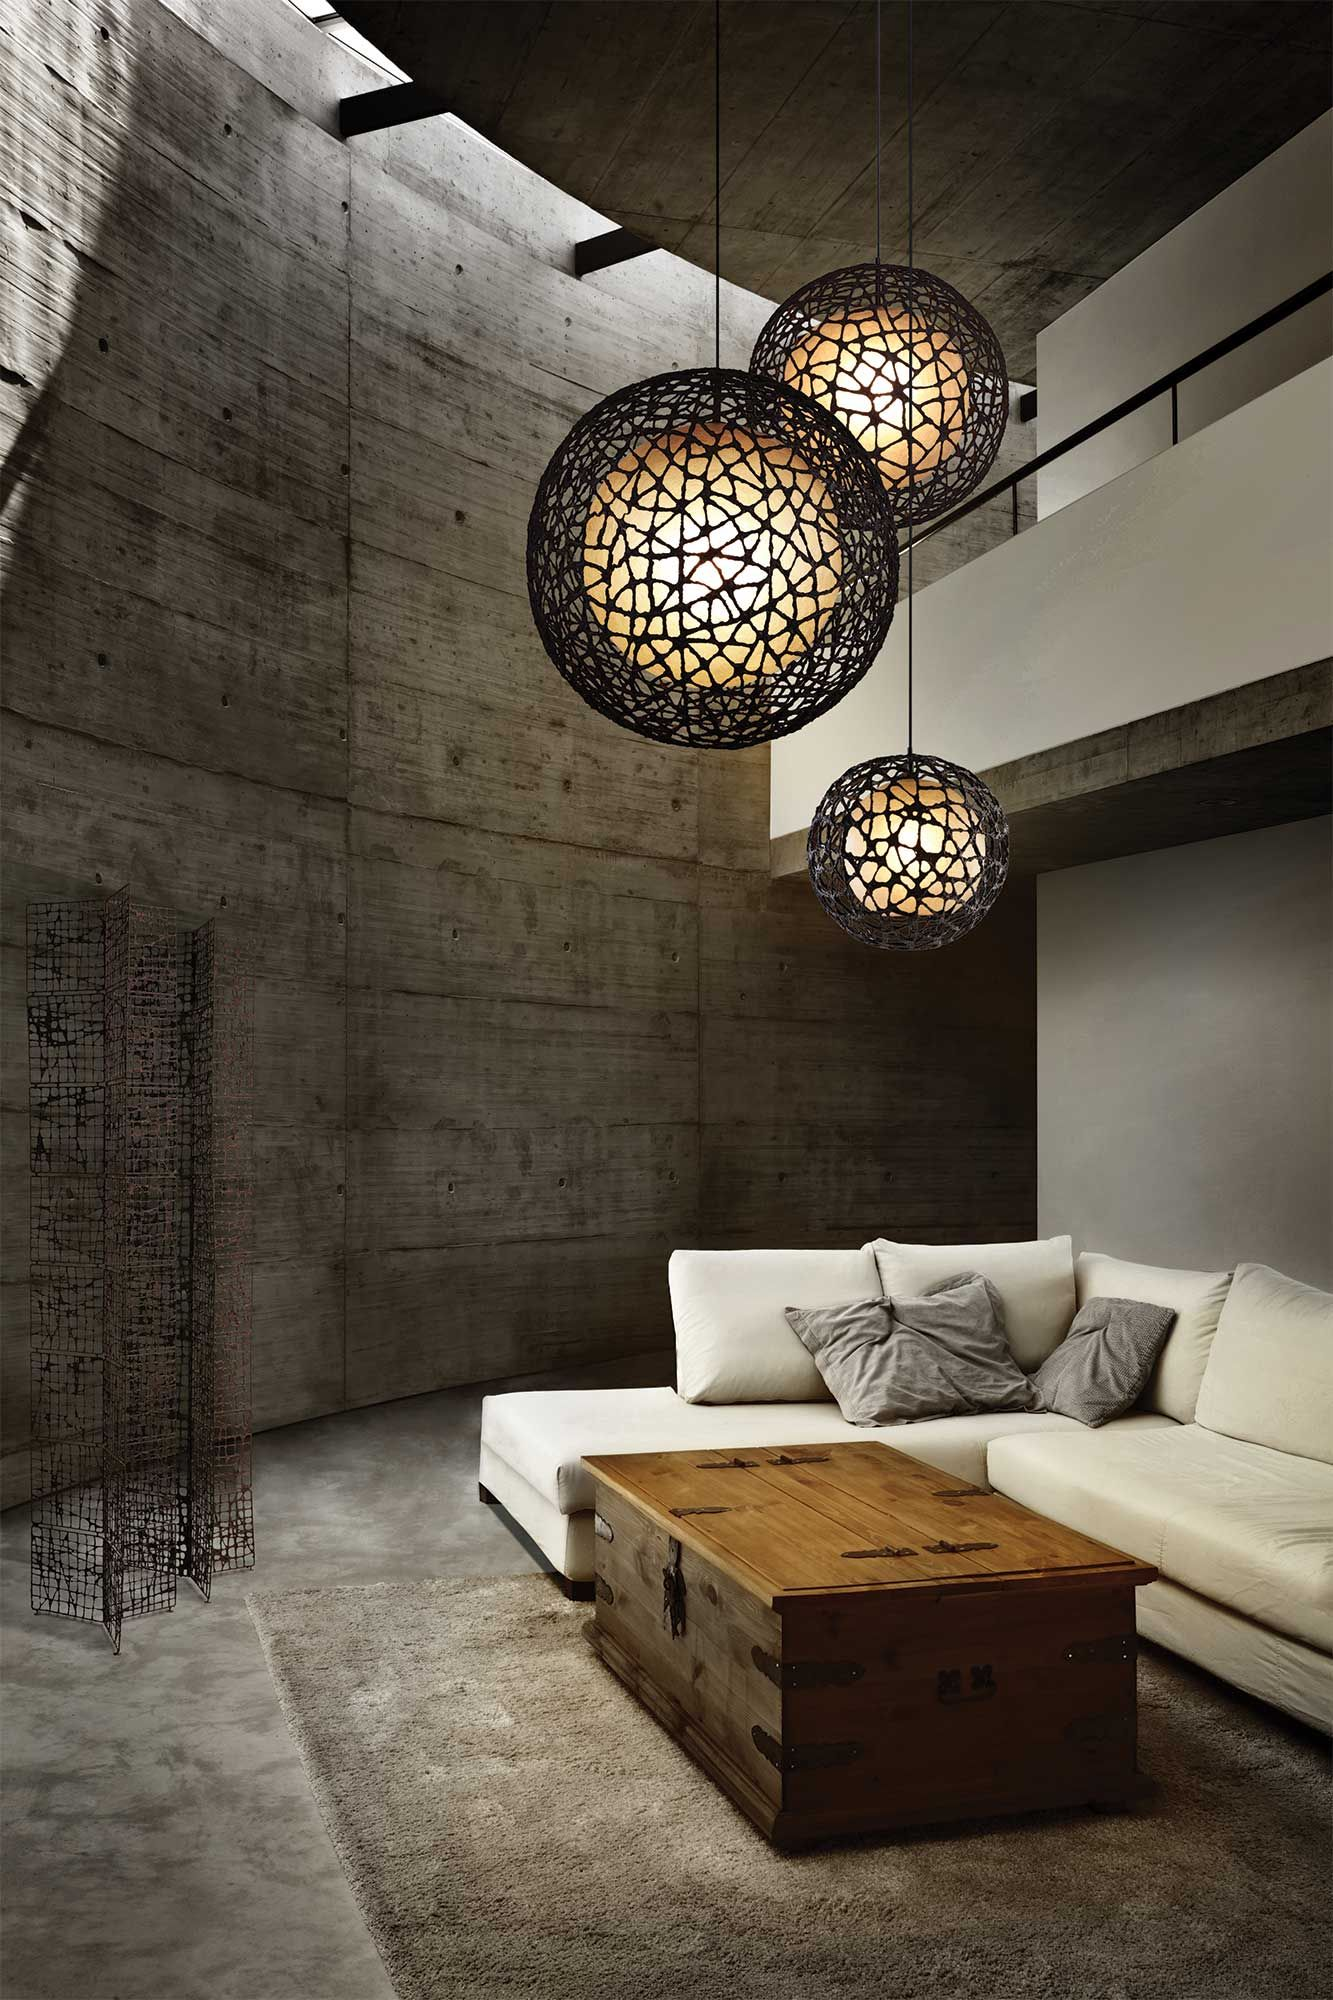 Lampe Wohnzimmer C U C Me Round Pendant By Hive Lpcc 1515 Lampen